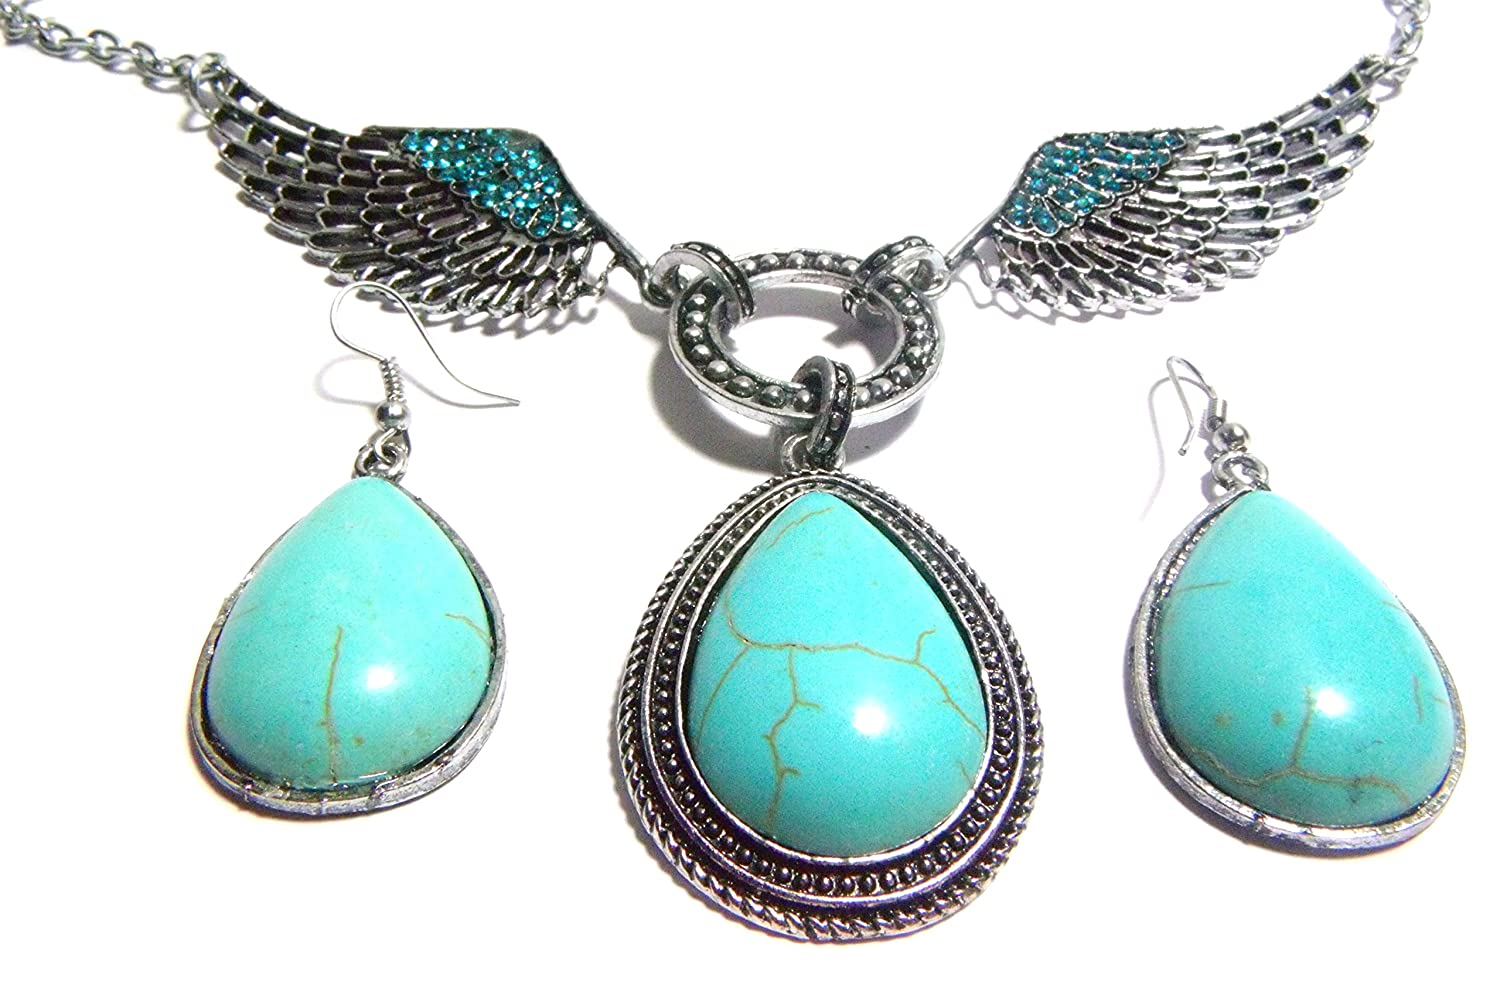 "Necklace & Earring Set: 20"" (22""+ 2"" Ext) Angel Wings Blue Crystal Southwestern Oval Pendant Green Simulated Turquoise & 2"" Inch Oval Dangle Drop Earrings"